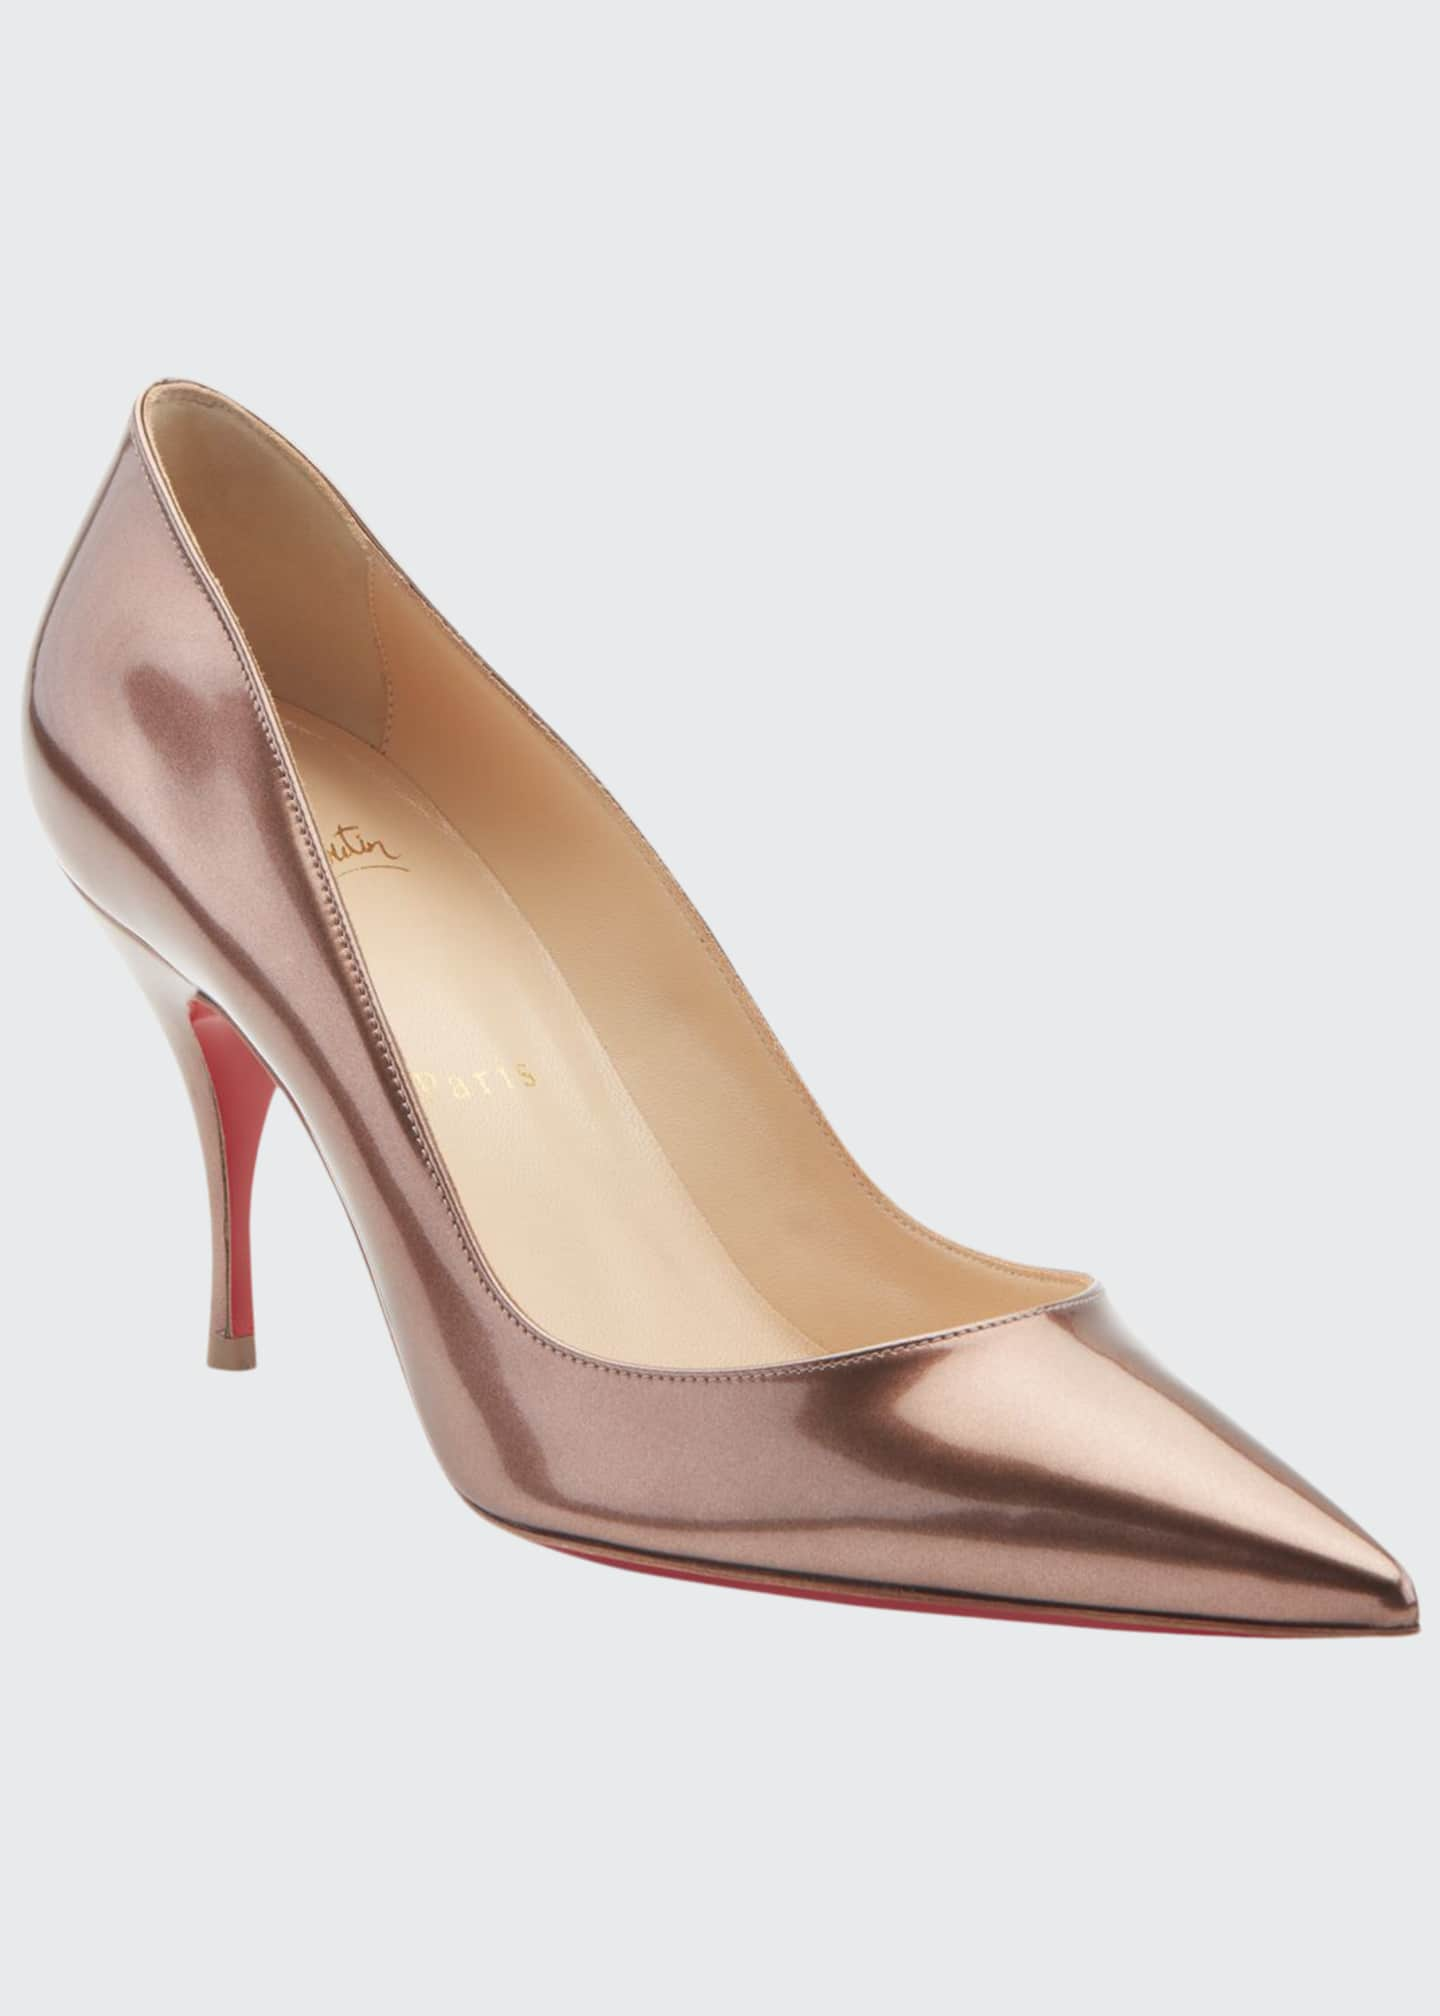 Christian Louboutin Clare Metallic Patent Leather Red Sole